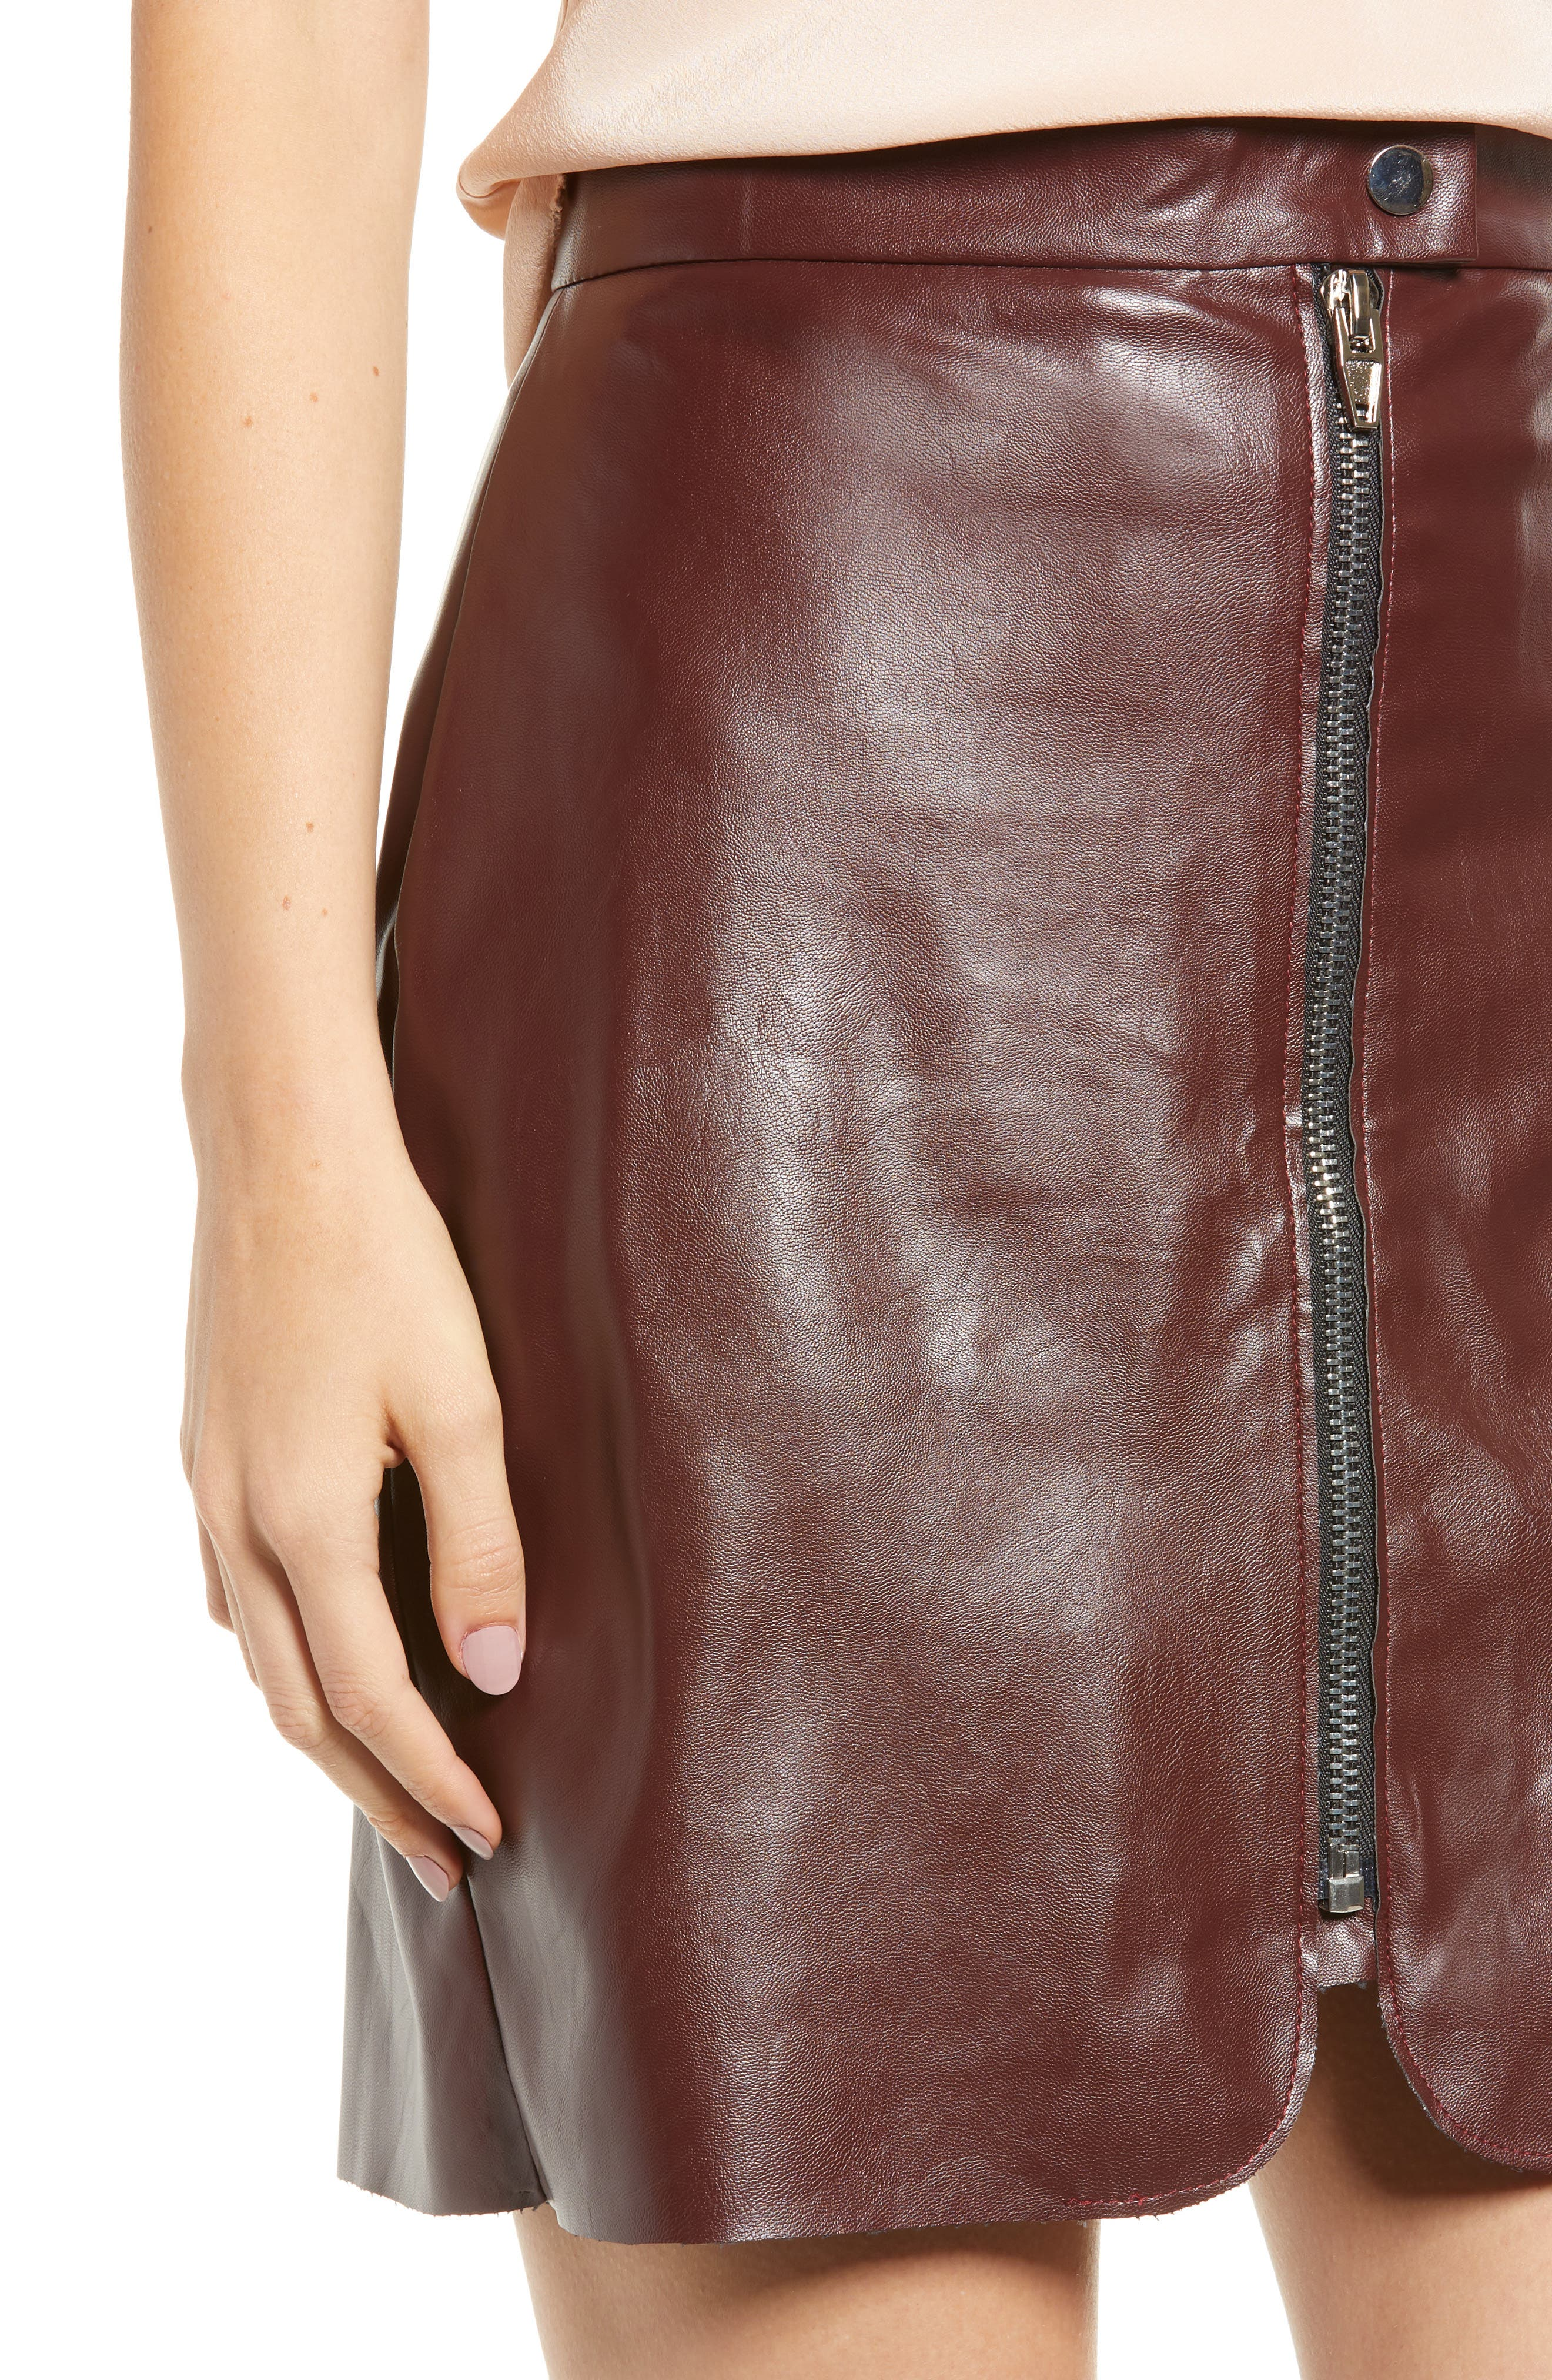 Bishop + Young Exposed Zip Miniskirt,                             Alternate thumbnail 4, color,                             BURGUNDY